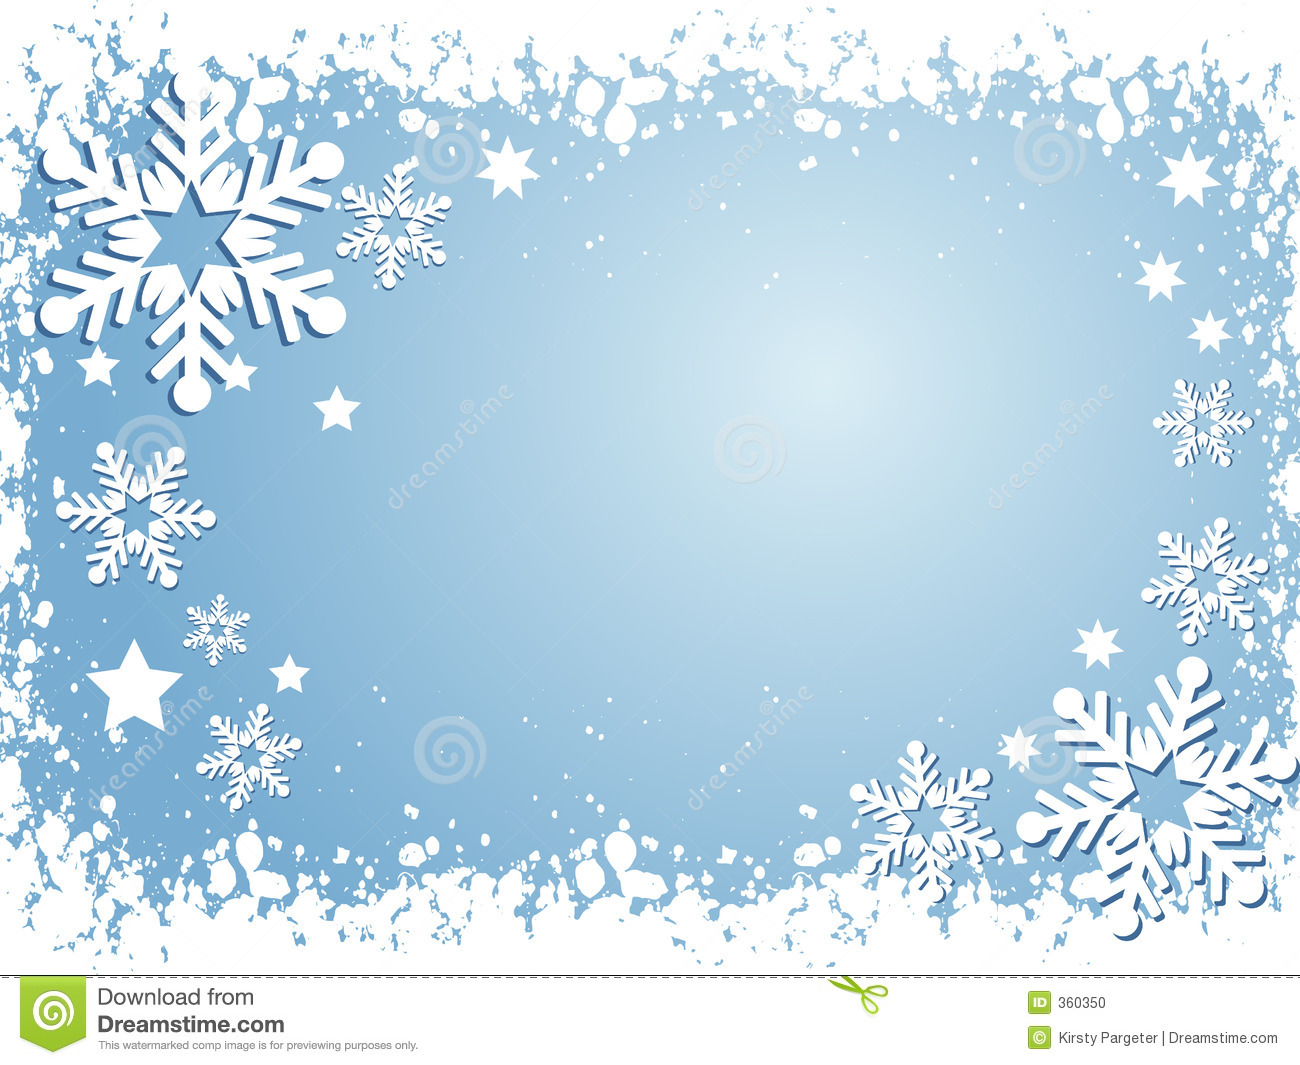 Winter themed background with snowflakes and stars.